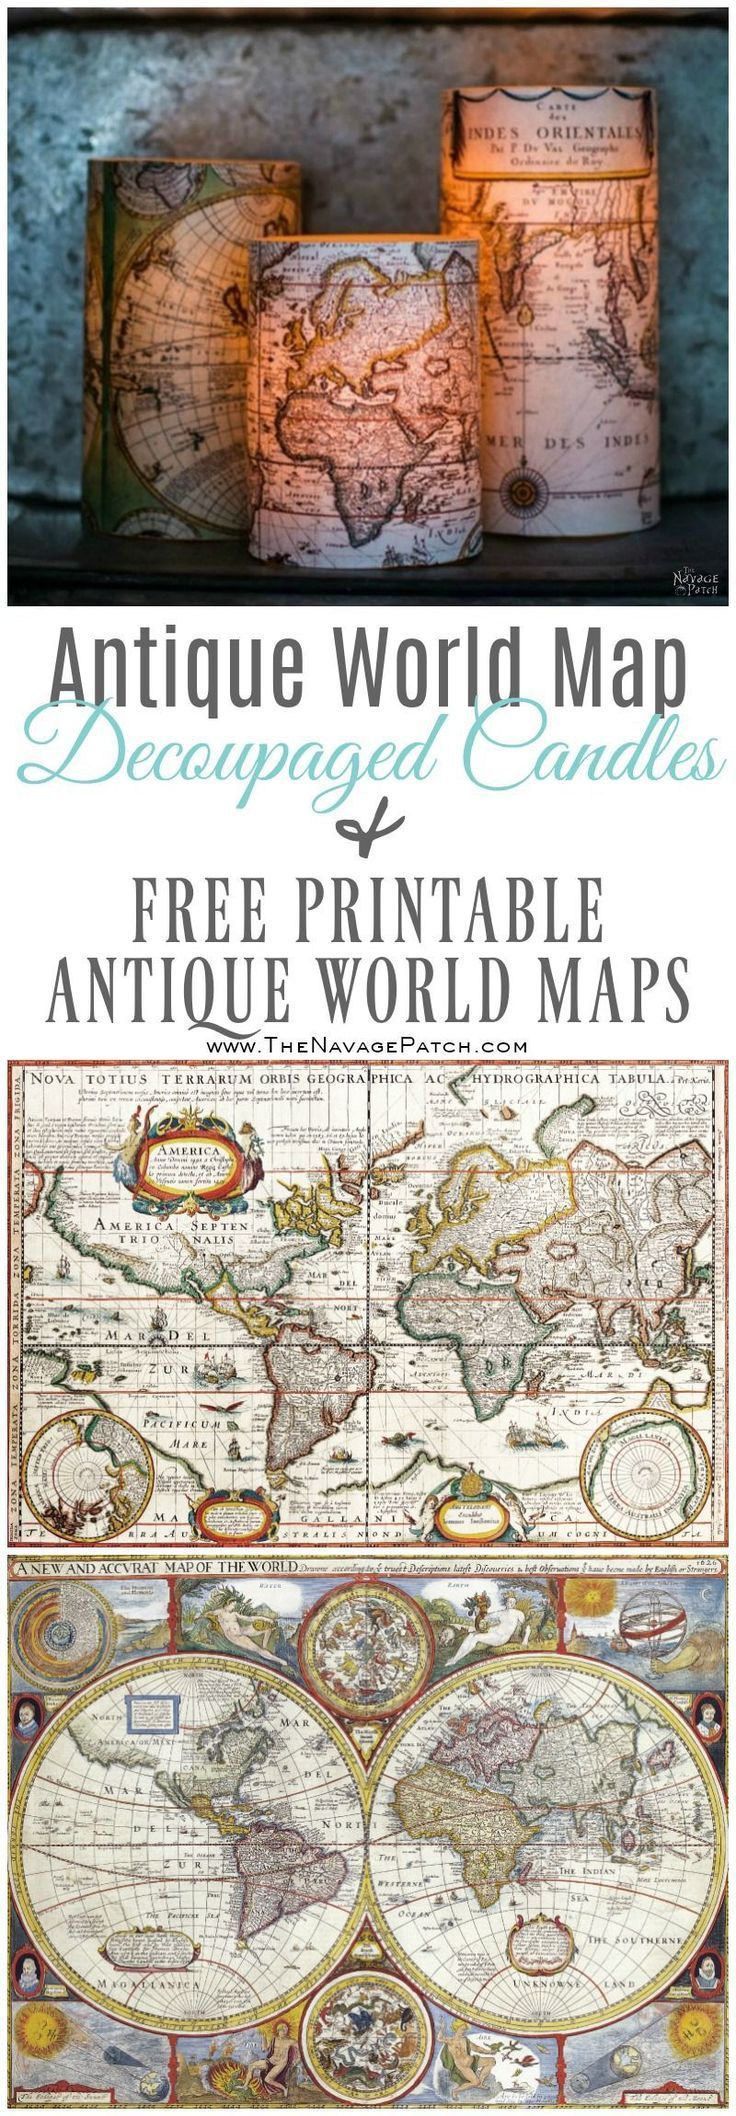 Antique world map decoupaged candles how to decoupage free antique world map decoupaged candles how to decoupage free printable old maps free gumiabroncs Choice Image